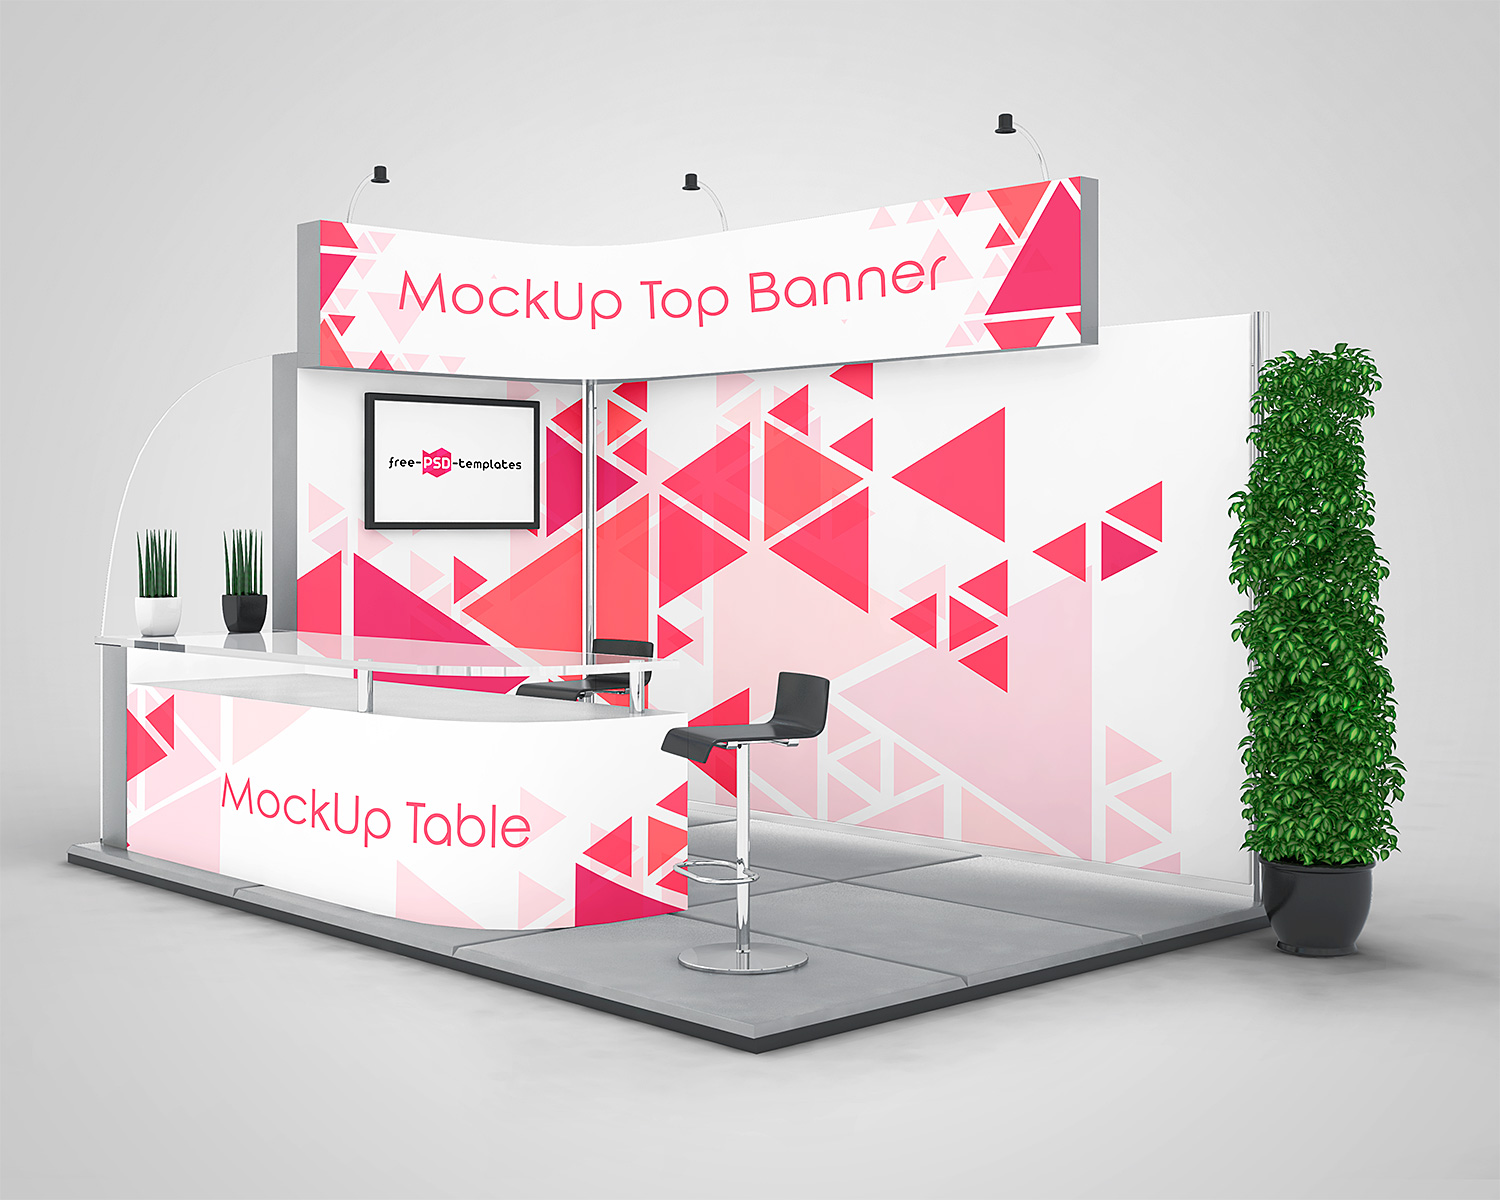 Exhibition Stand Mockup Free Download : Exhibition stand mock ups free in psd mockup